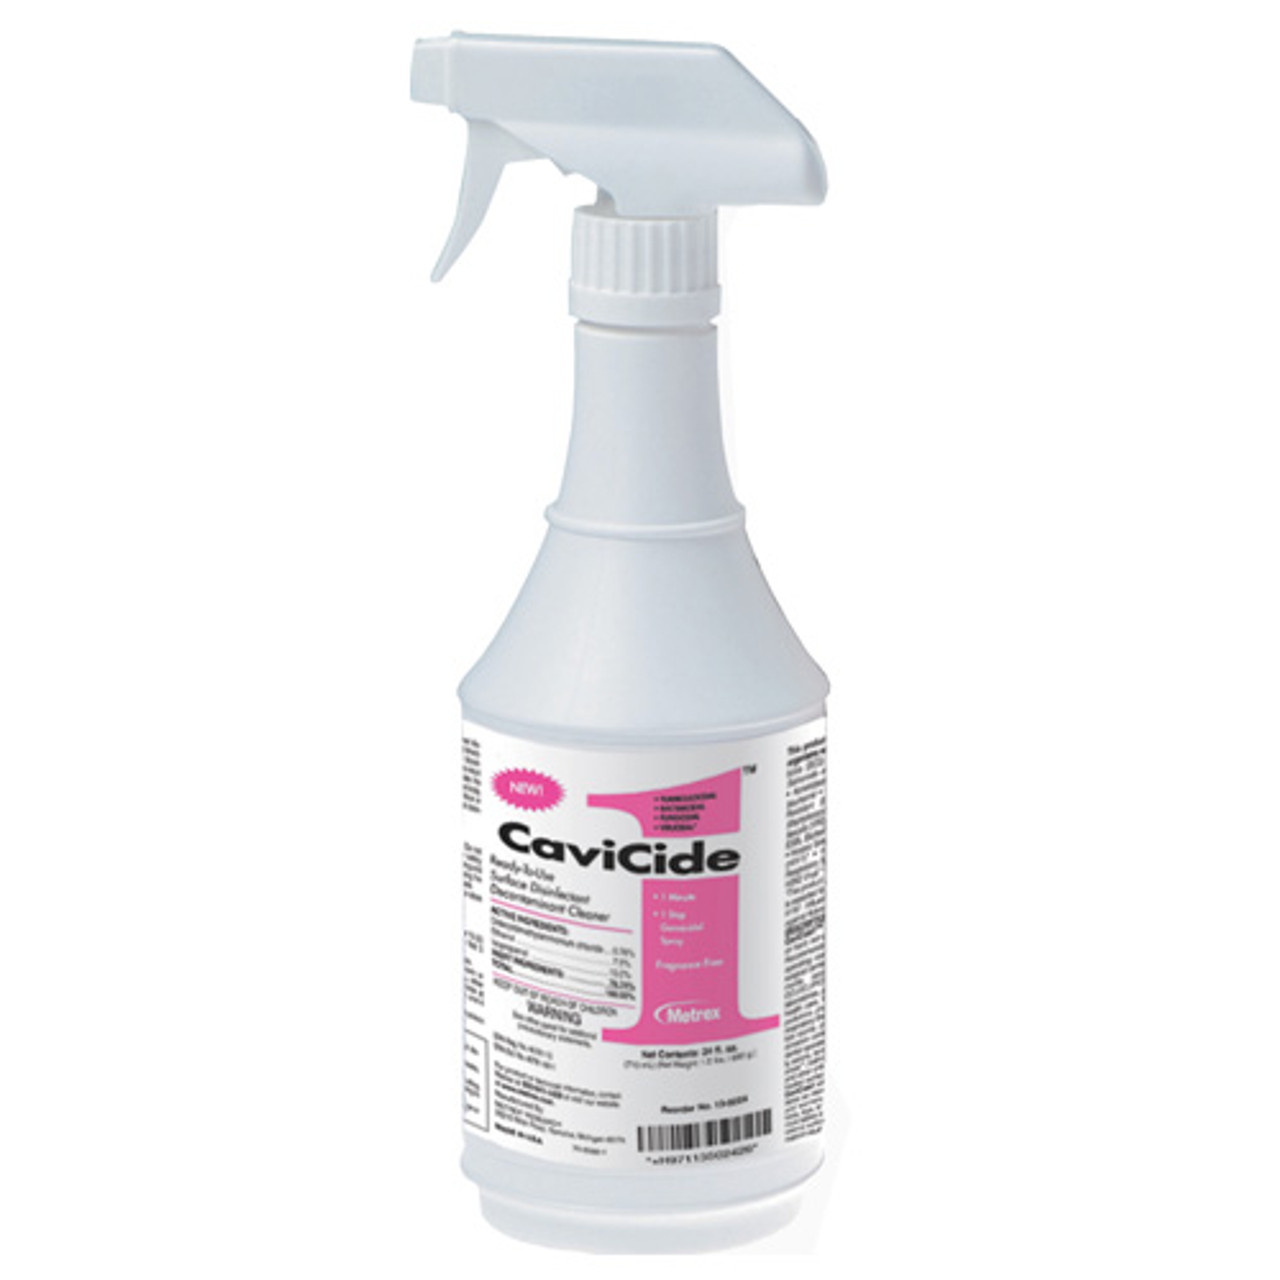 Cavicide1 Surface Disinfectant 24 ounce Spray